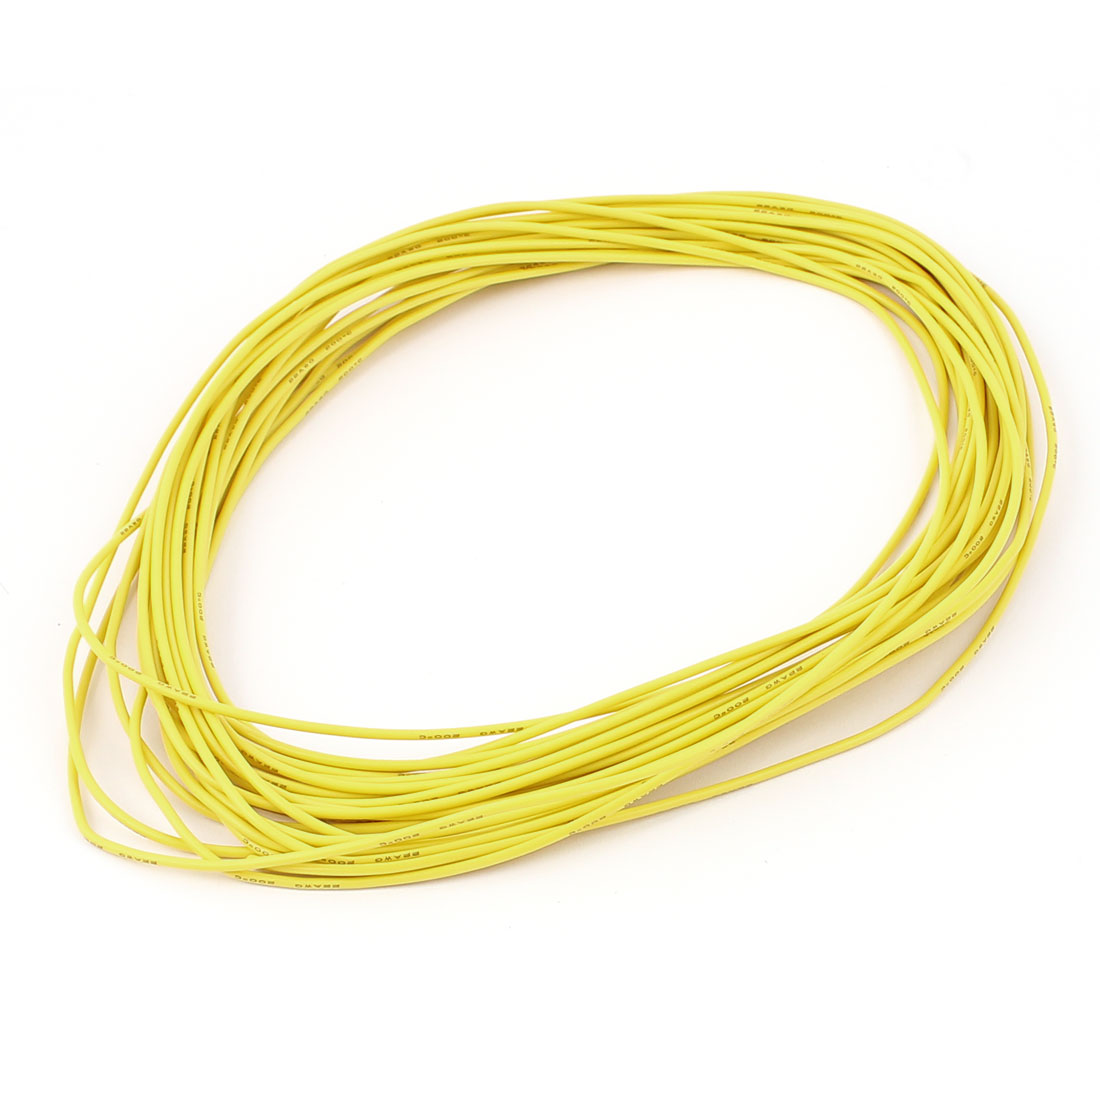 10M 22AWG Electric Copper Core Flexible Silicone Wire Cable Yellow